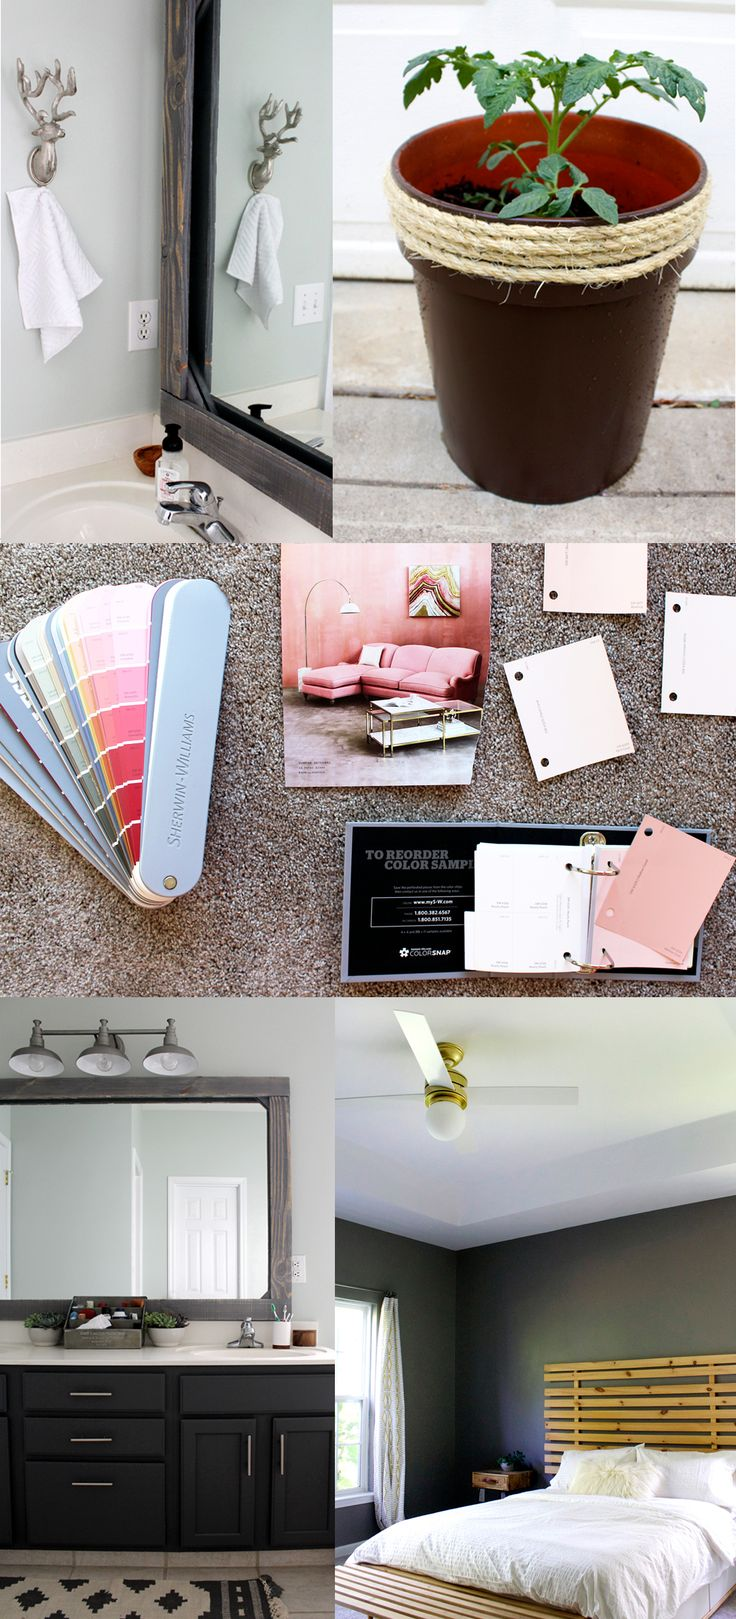 Home Decorating Diy Projects The Most Popular Articles On